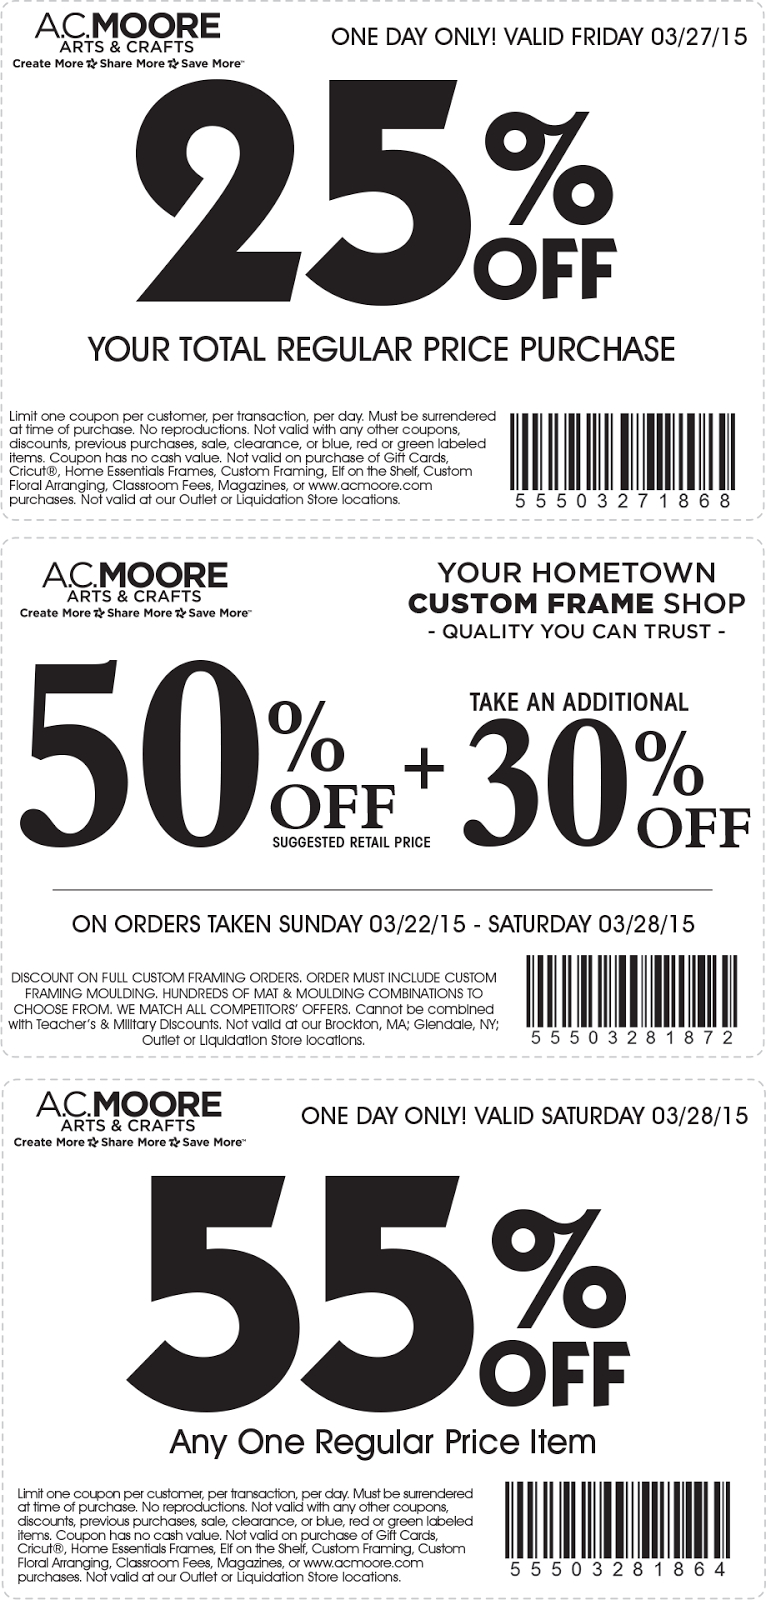 Coupons For Ac Moore Printable : Banners Coupons - Free Online Printable Ac Moore Coupons